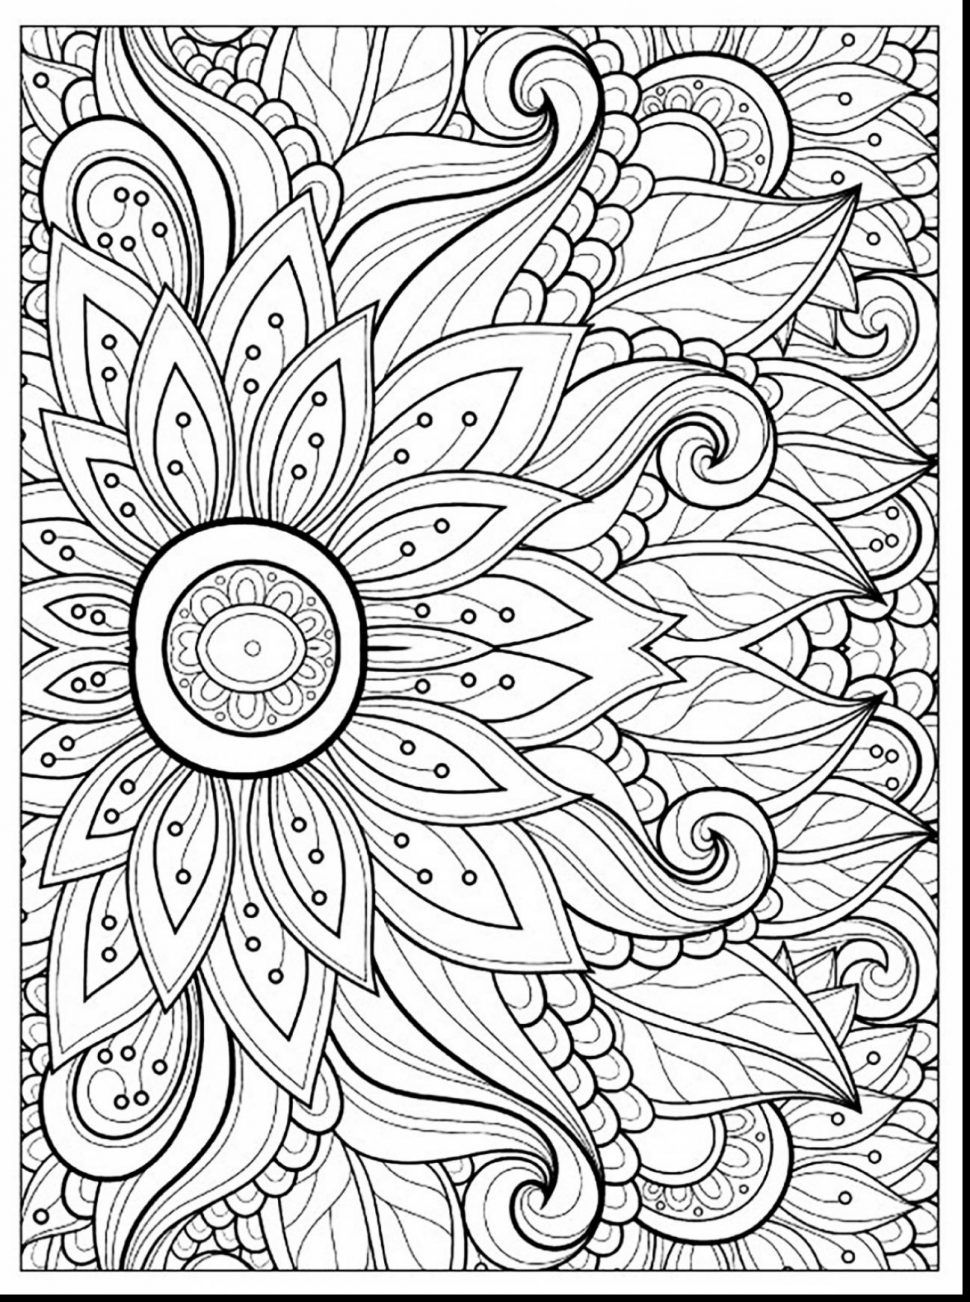 middle school coloring pages pdf coloring pages for high school agers middle pdf students coloring pdf school pages middle